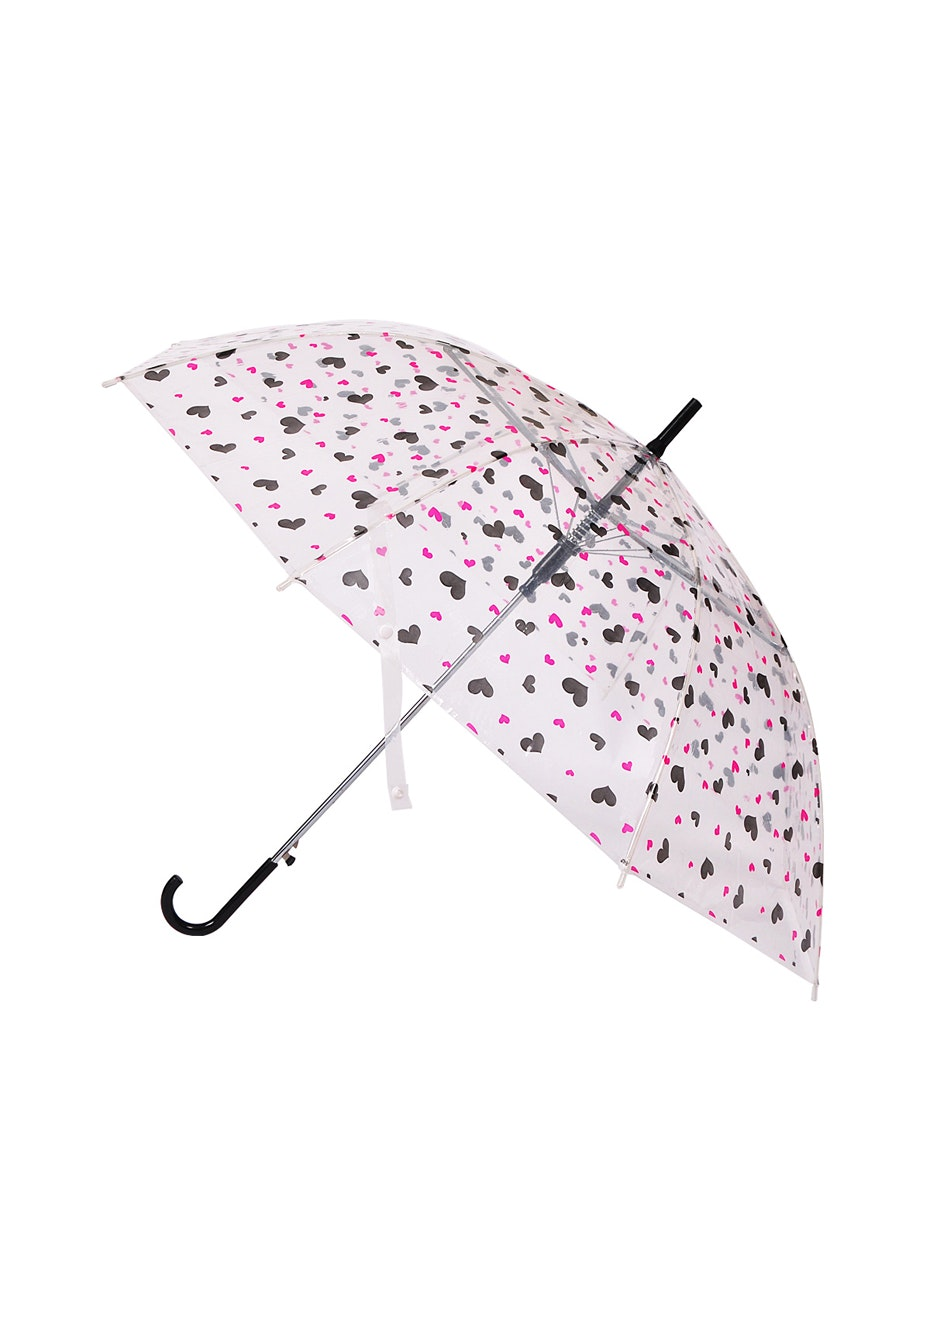 Little Ray Of Sunshine Umbrella - Pink/Blk Hearts